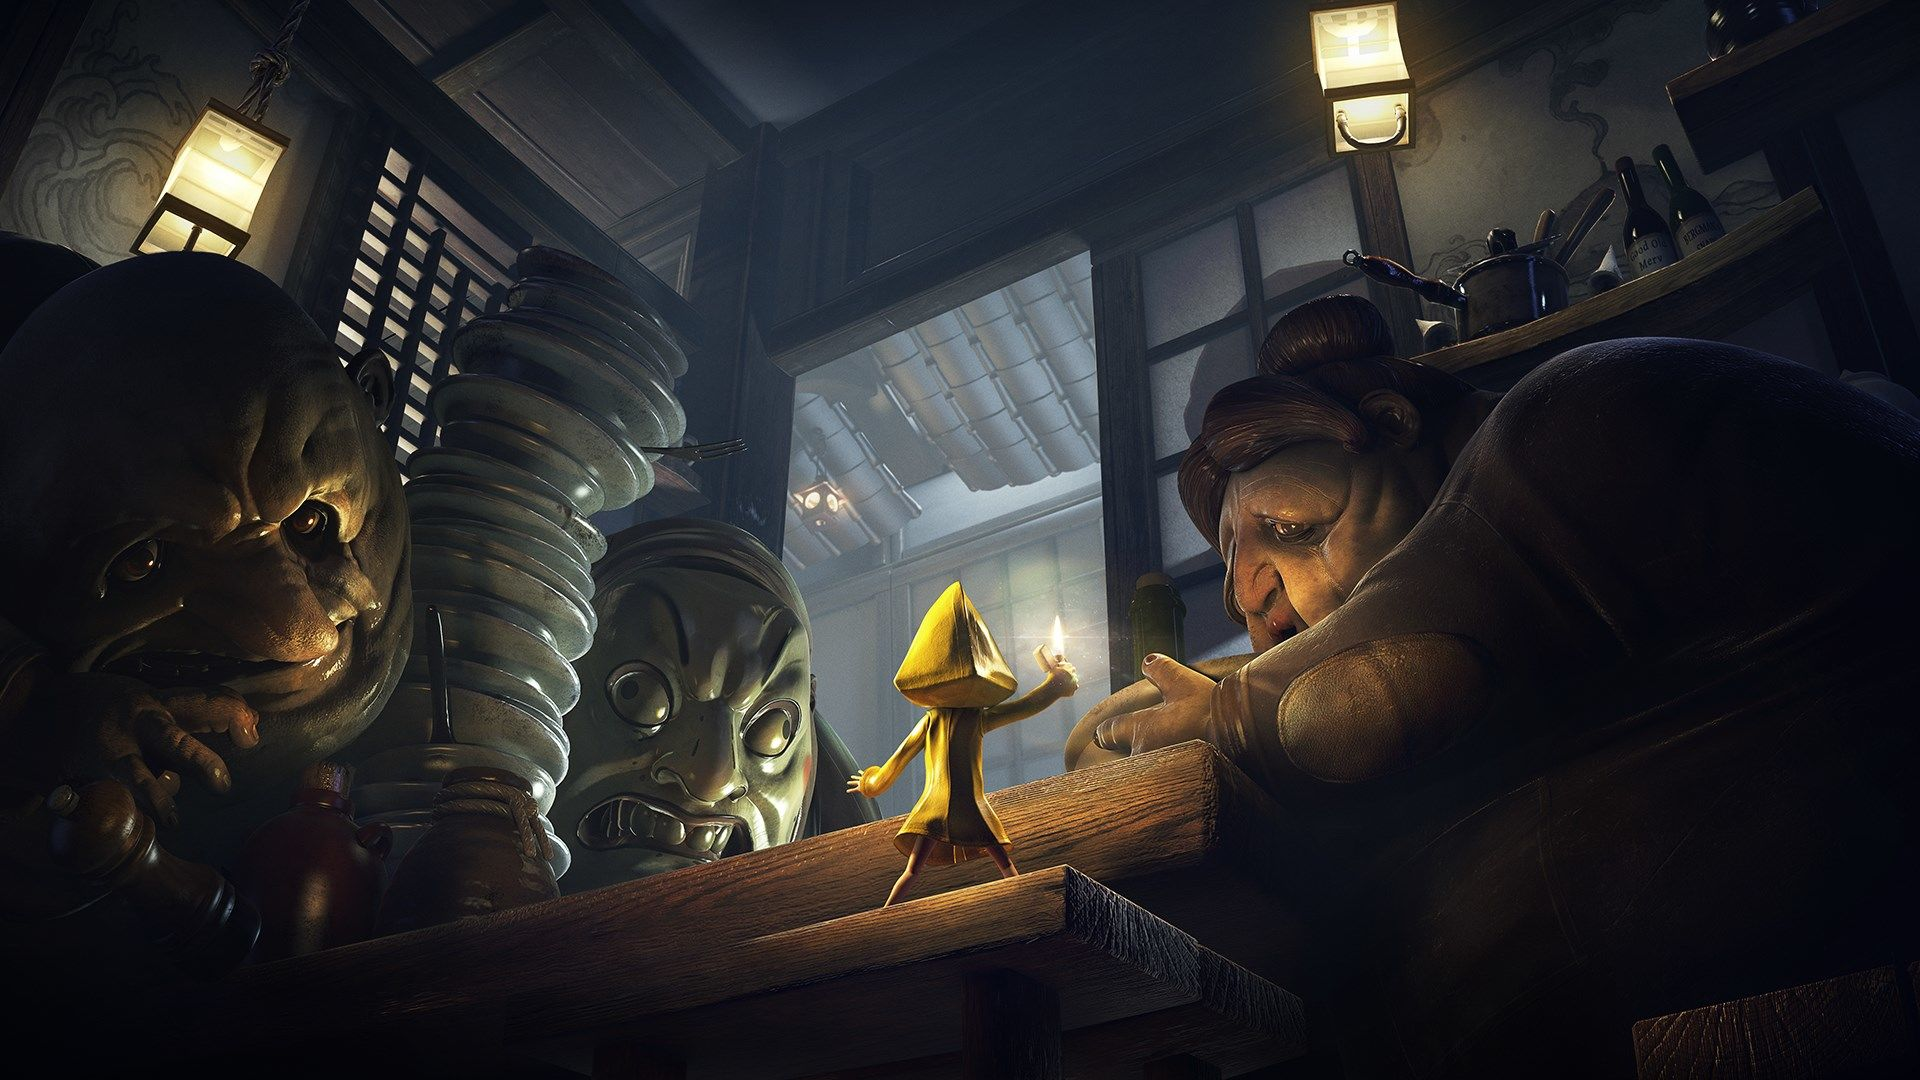 'We're done with Little Nightmares, but the rest may come'